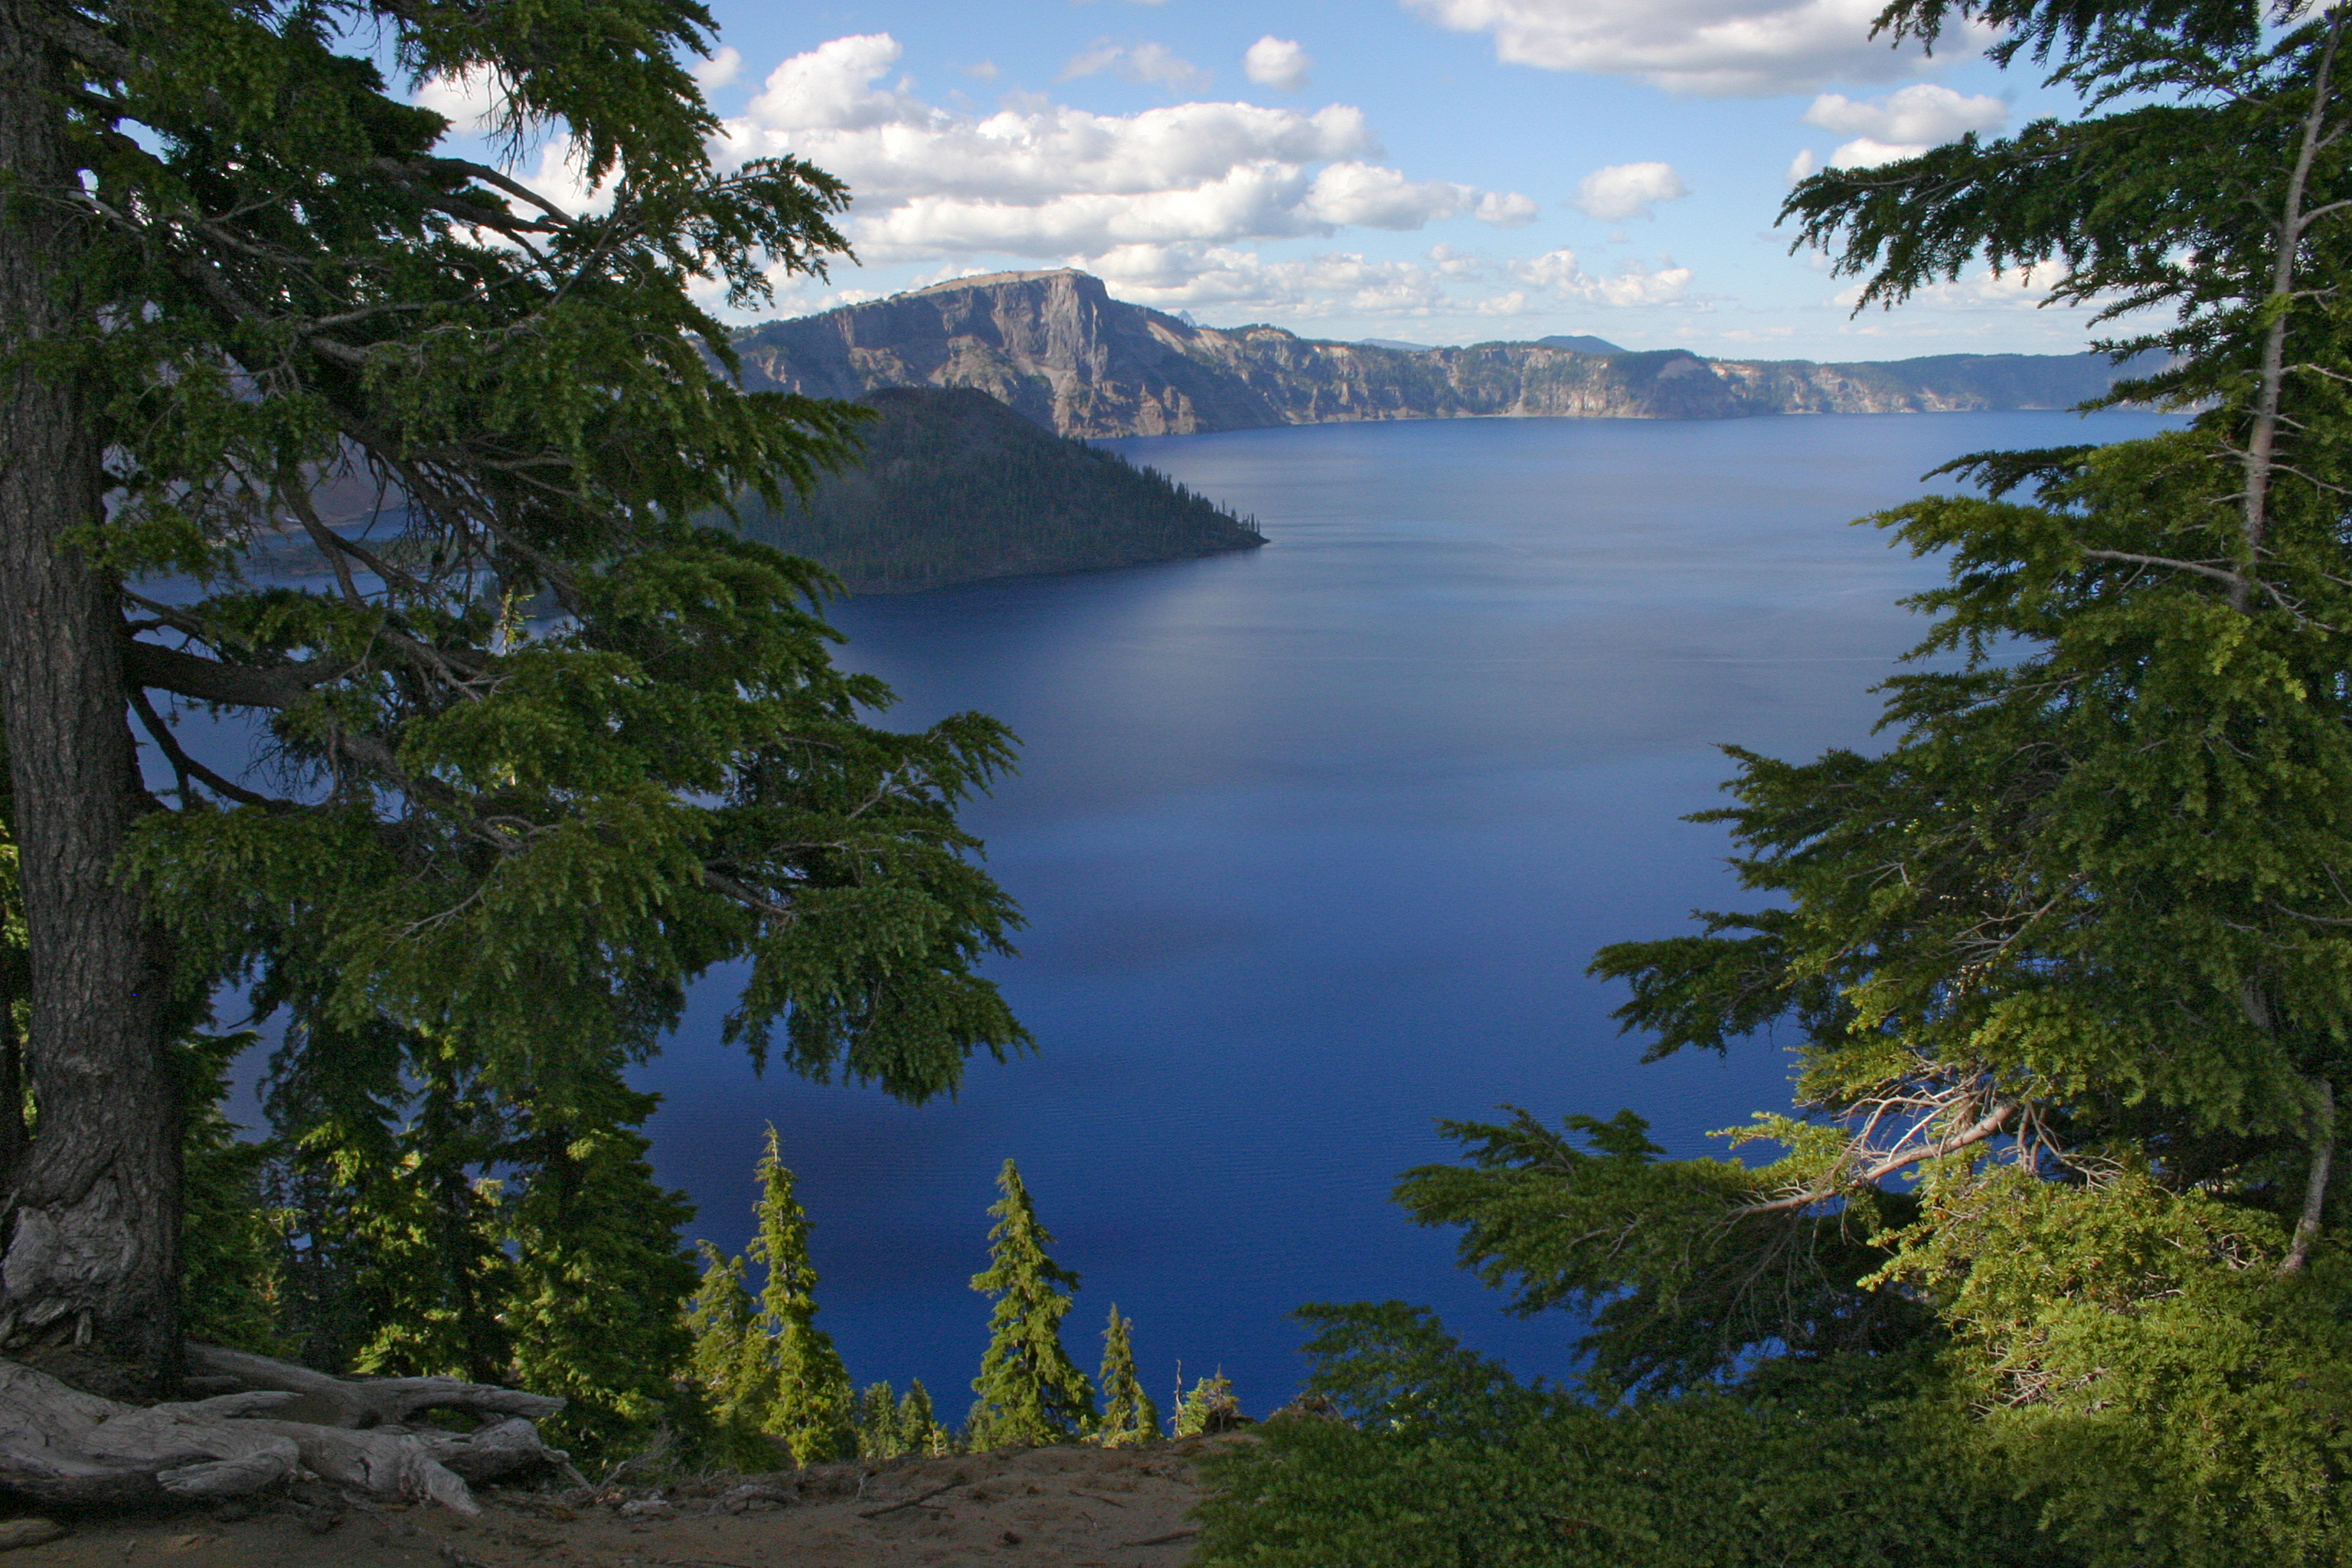 Crater Lake. Photo by arkgorzynski.